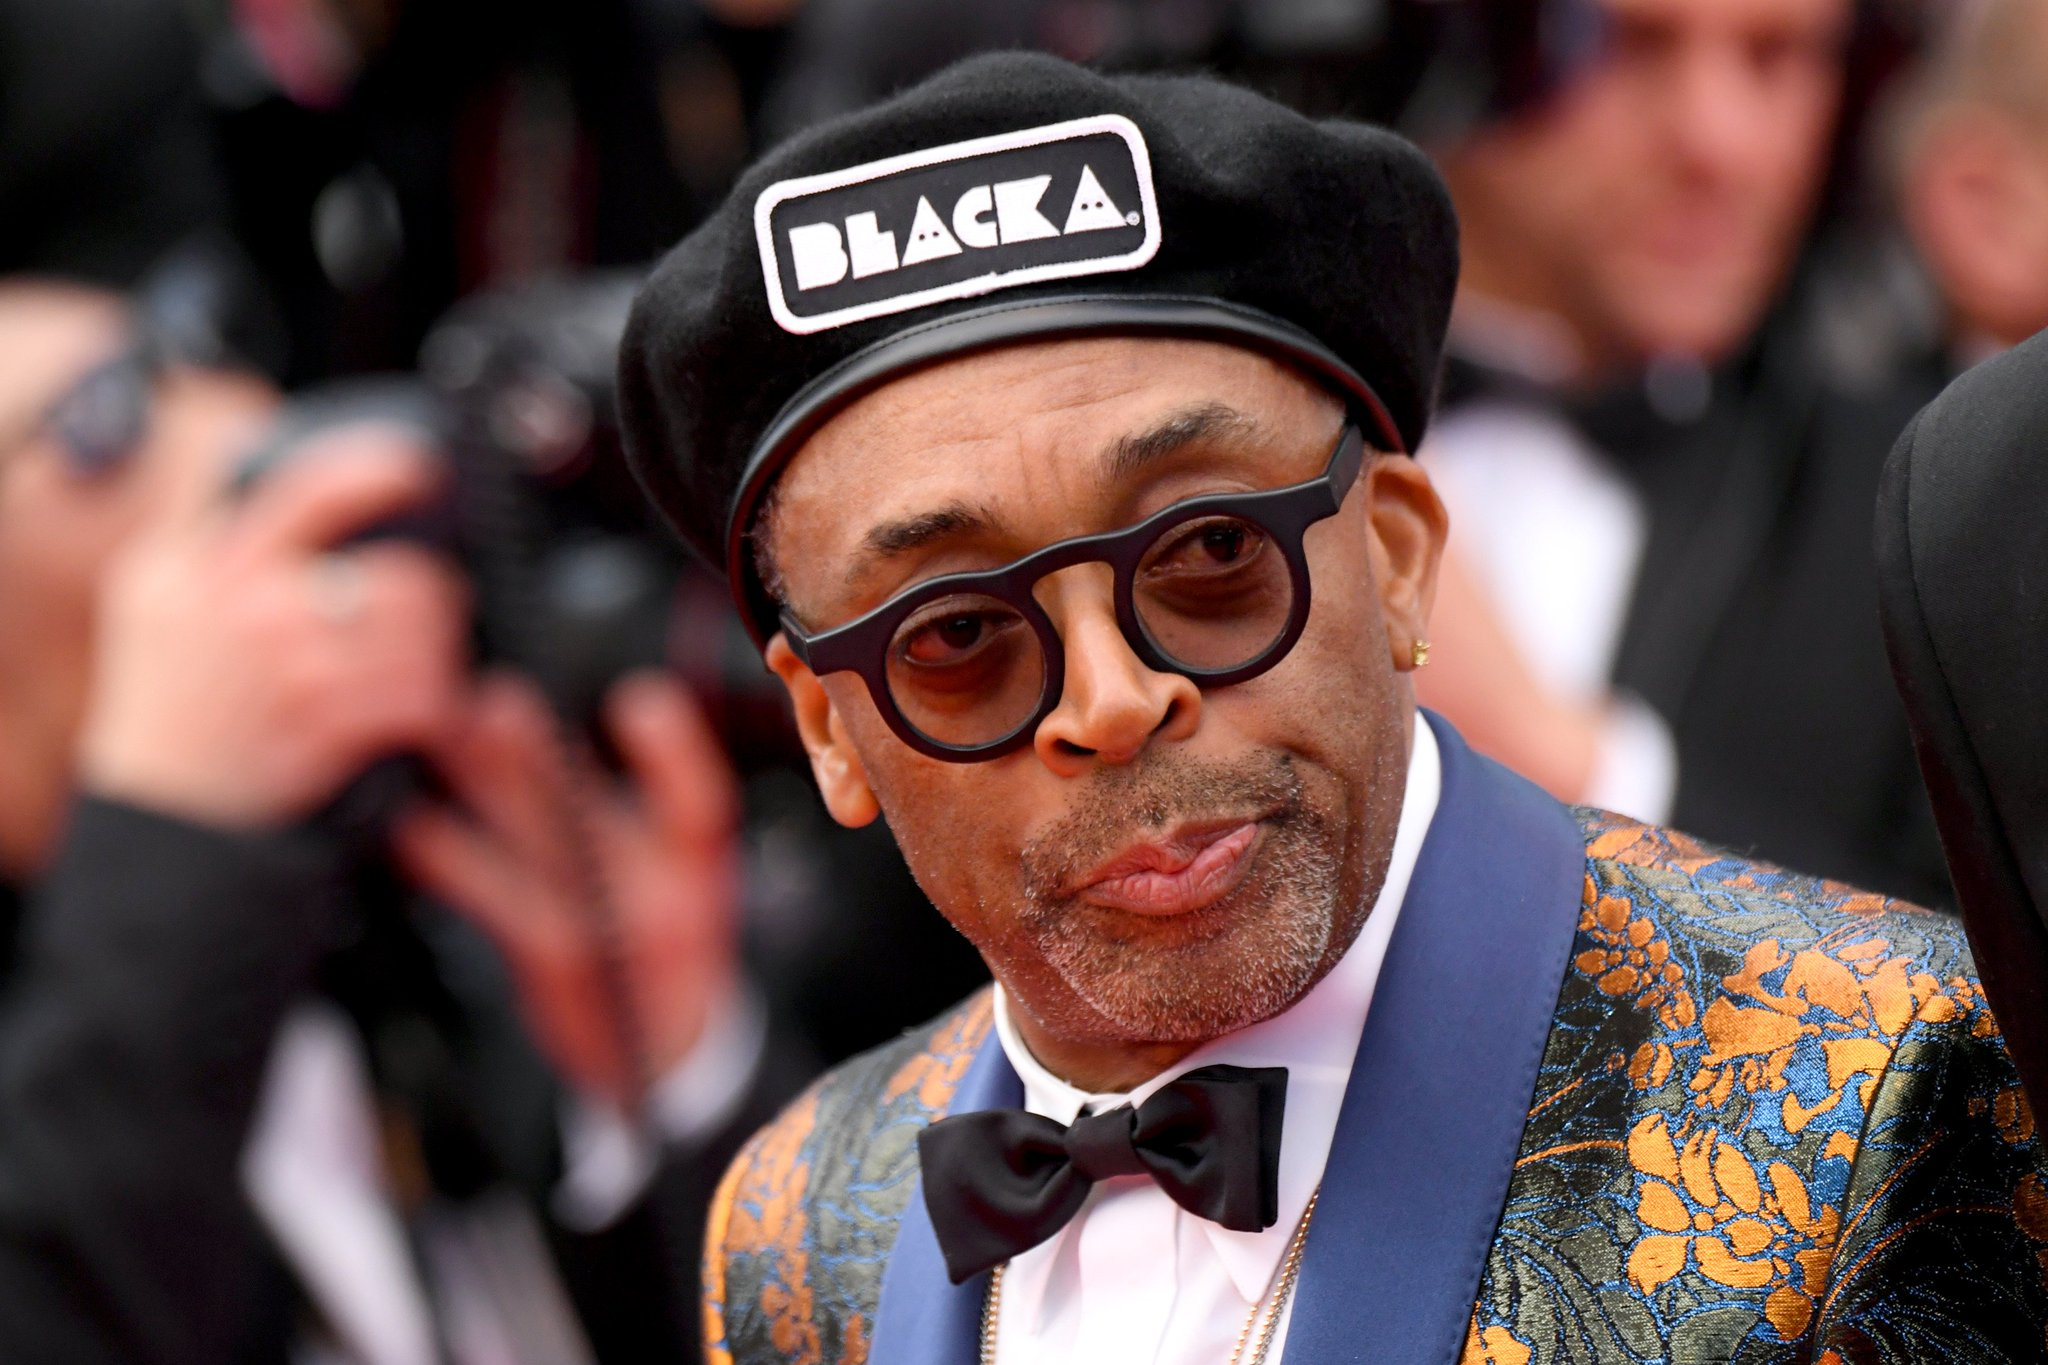 Spike Lee gave an impassioned speech at the BlacKkKlansman Cannes premiere. https://t.co/GeBJ5RIHjf https://t.co/a39TfF5YUR